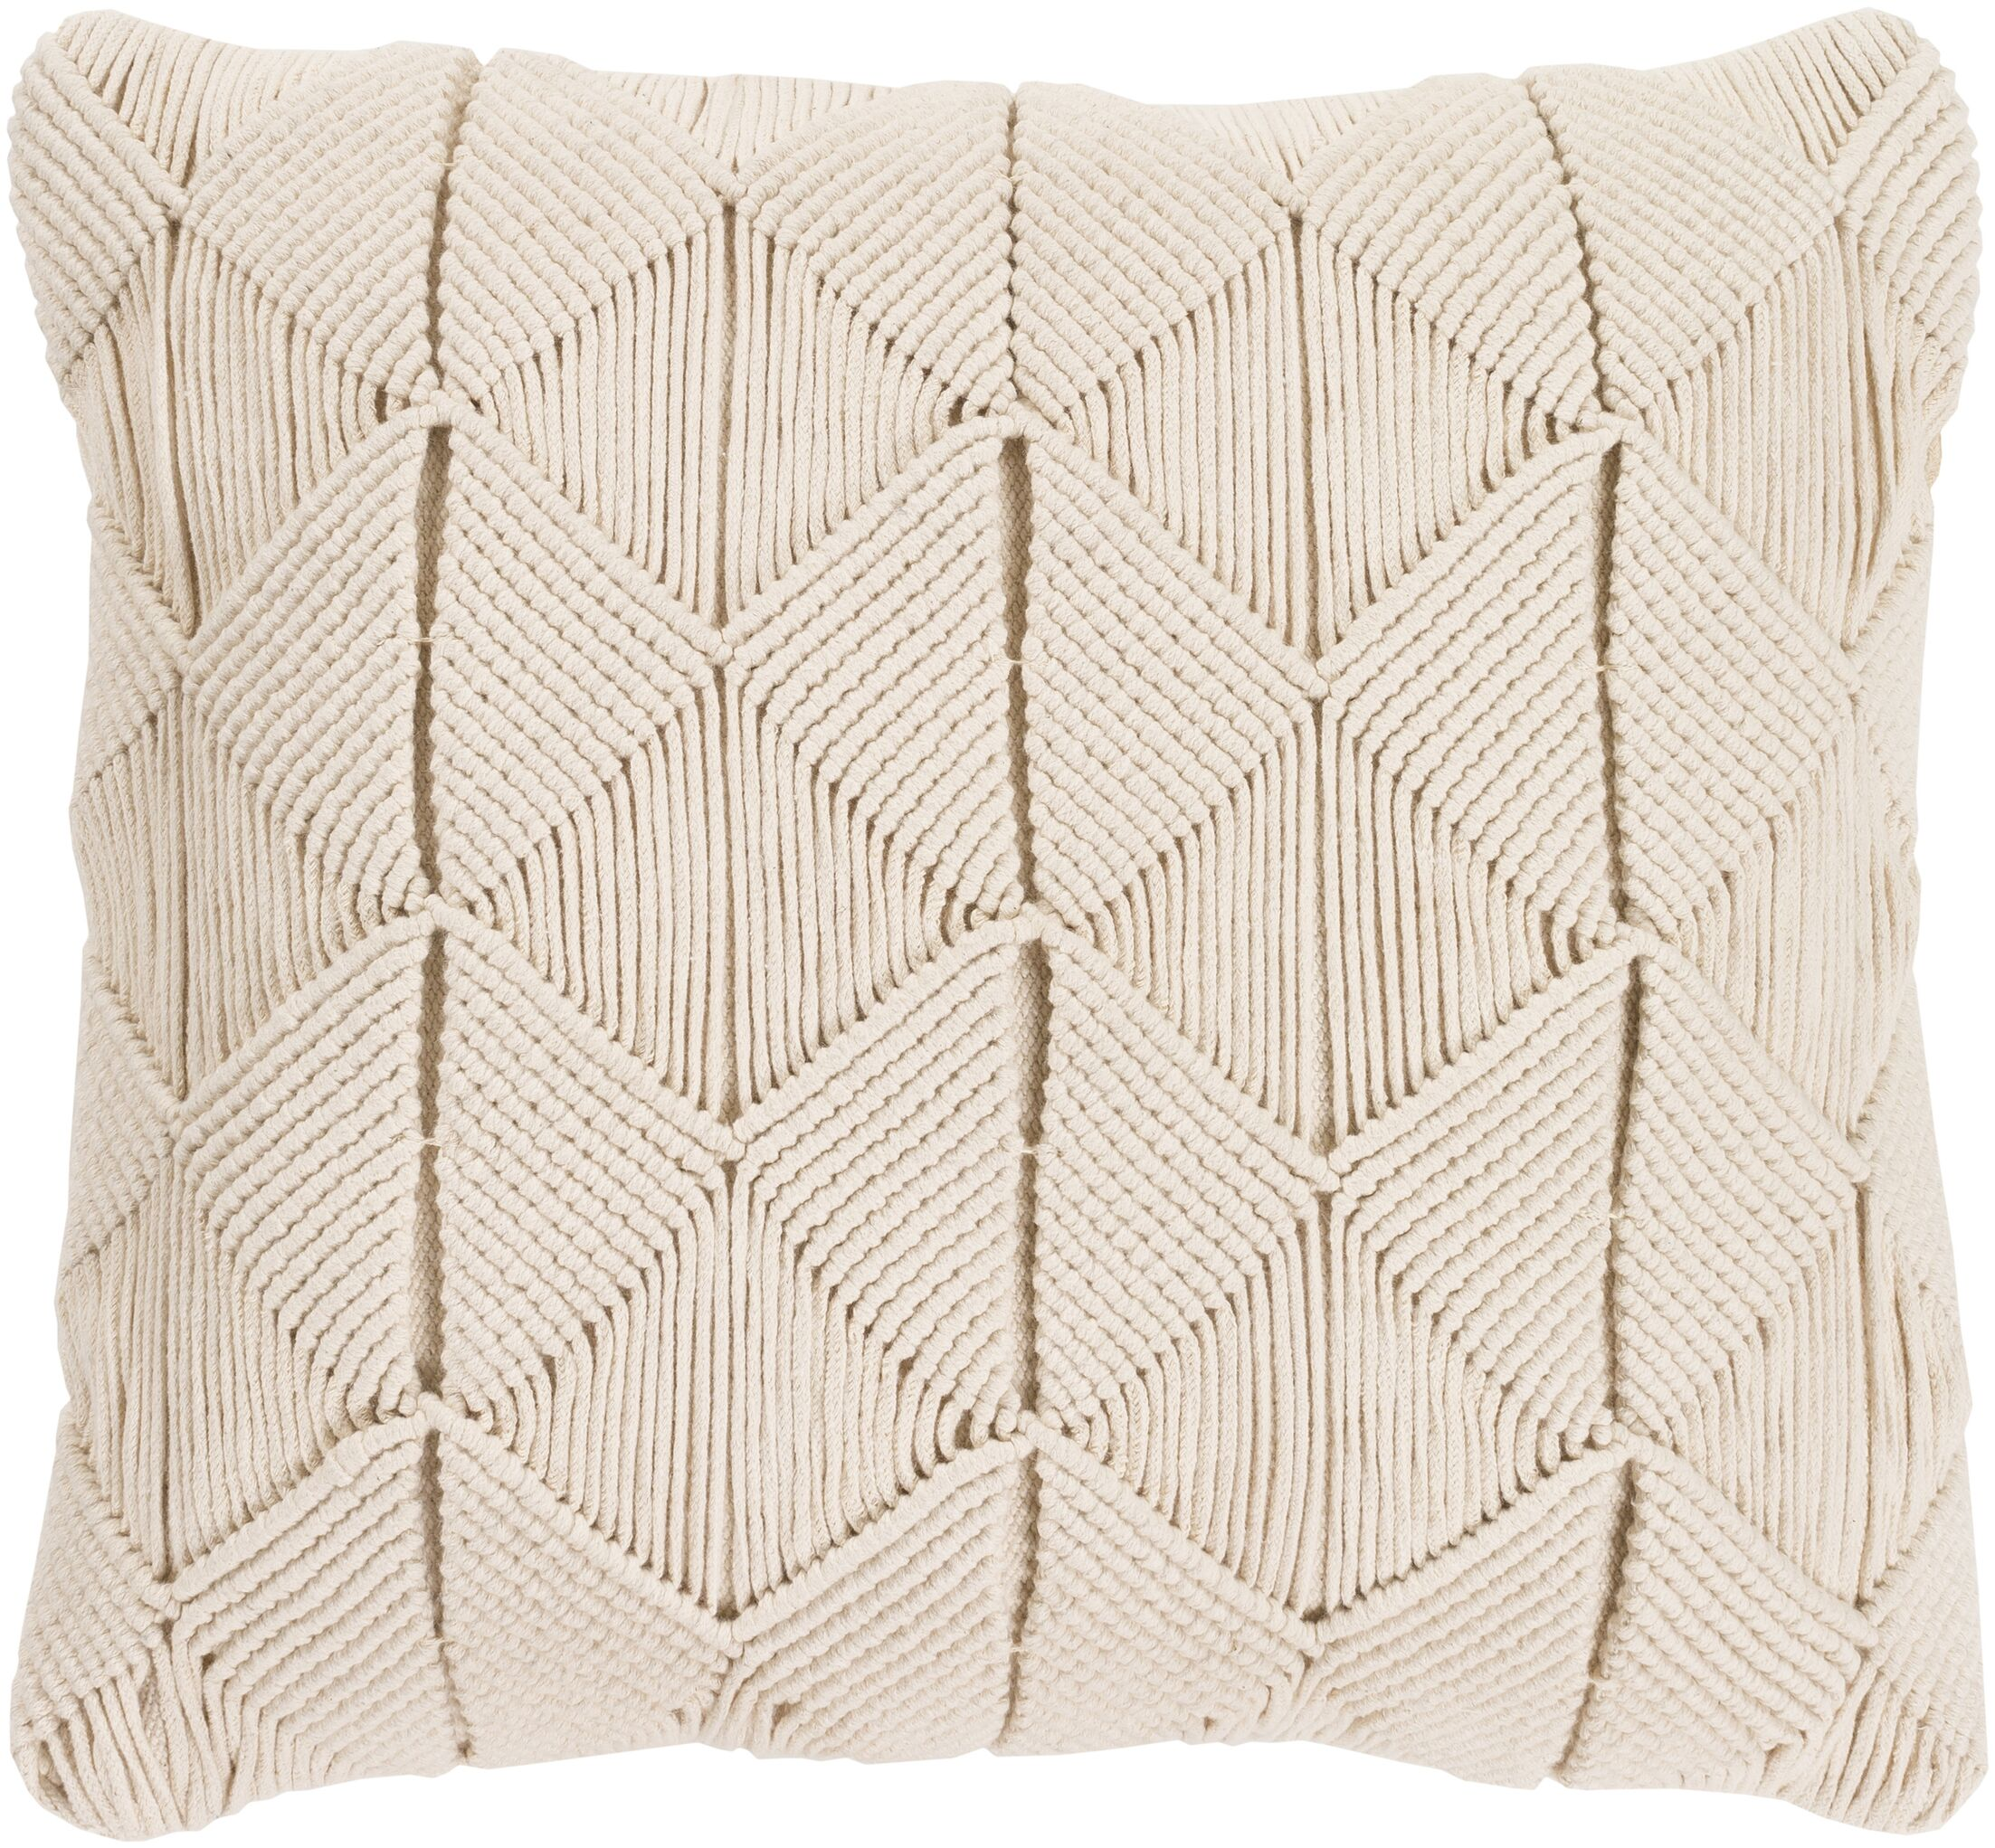 Migramah Sage Natural Fiber 22 x 22 Pillow Cover Fill Material: Poly Fill, Size: 22